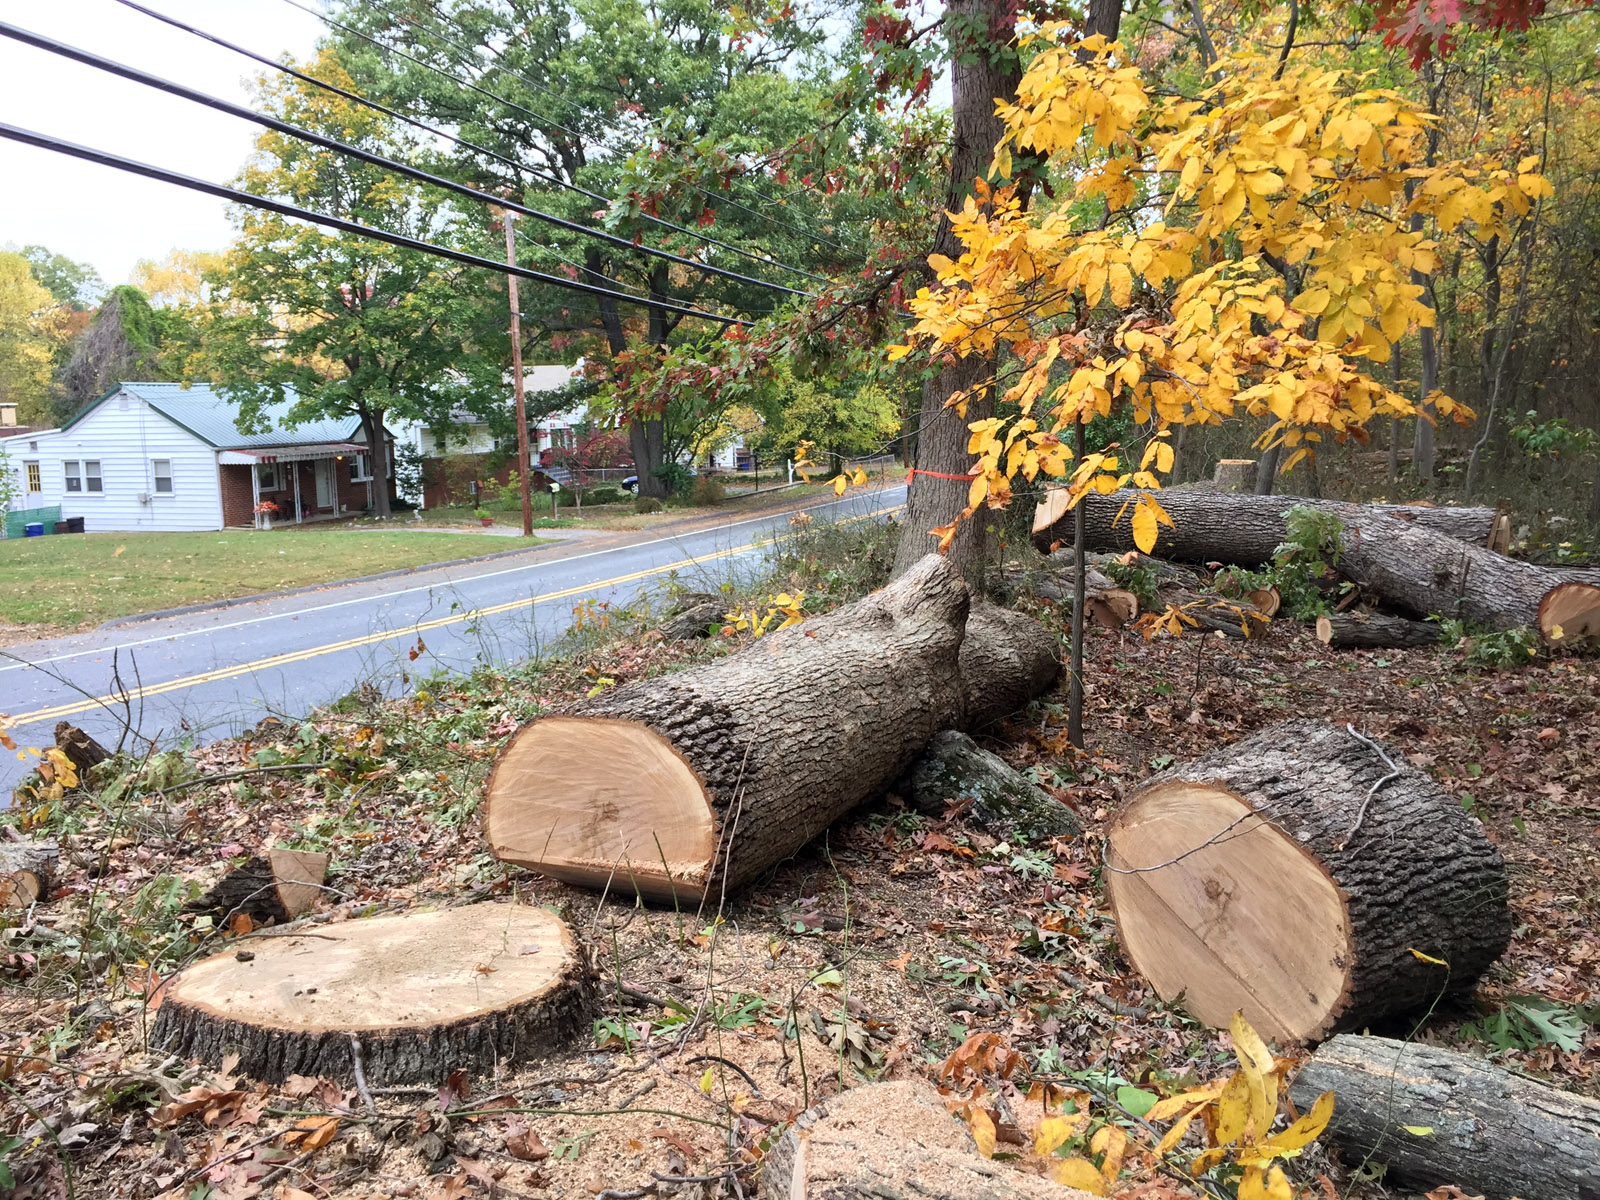 Pepco is required to trim or removed trees to allow appropriate power line clearance to last for at least four years of tree growth. These trees in Berwyn Heights were cut down recently. Neighbors didn't want them removed because they serve as a buffer against nearby highway traffic. (WTOP/Kristi King)